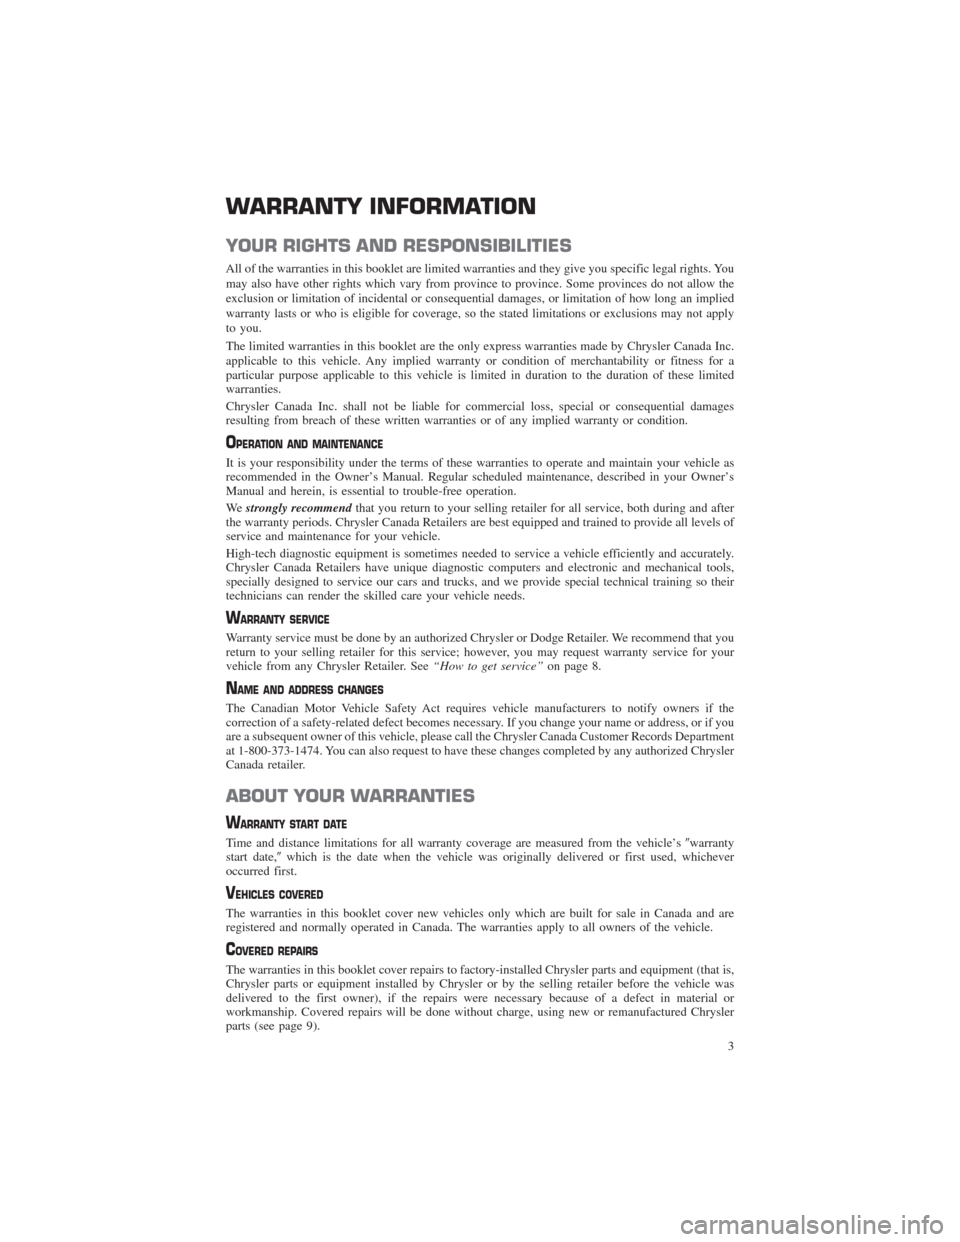 CHRYSLER 200 2014 1.G Warranty Booklet WARRANTY INFORMATION YOUR RIGHTS AND RESPONSIBILITIES All of the warranties in this booklet are limited warranties and they give you specific legal rights. You may also have other rights which vary fr